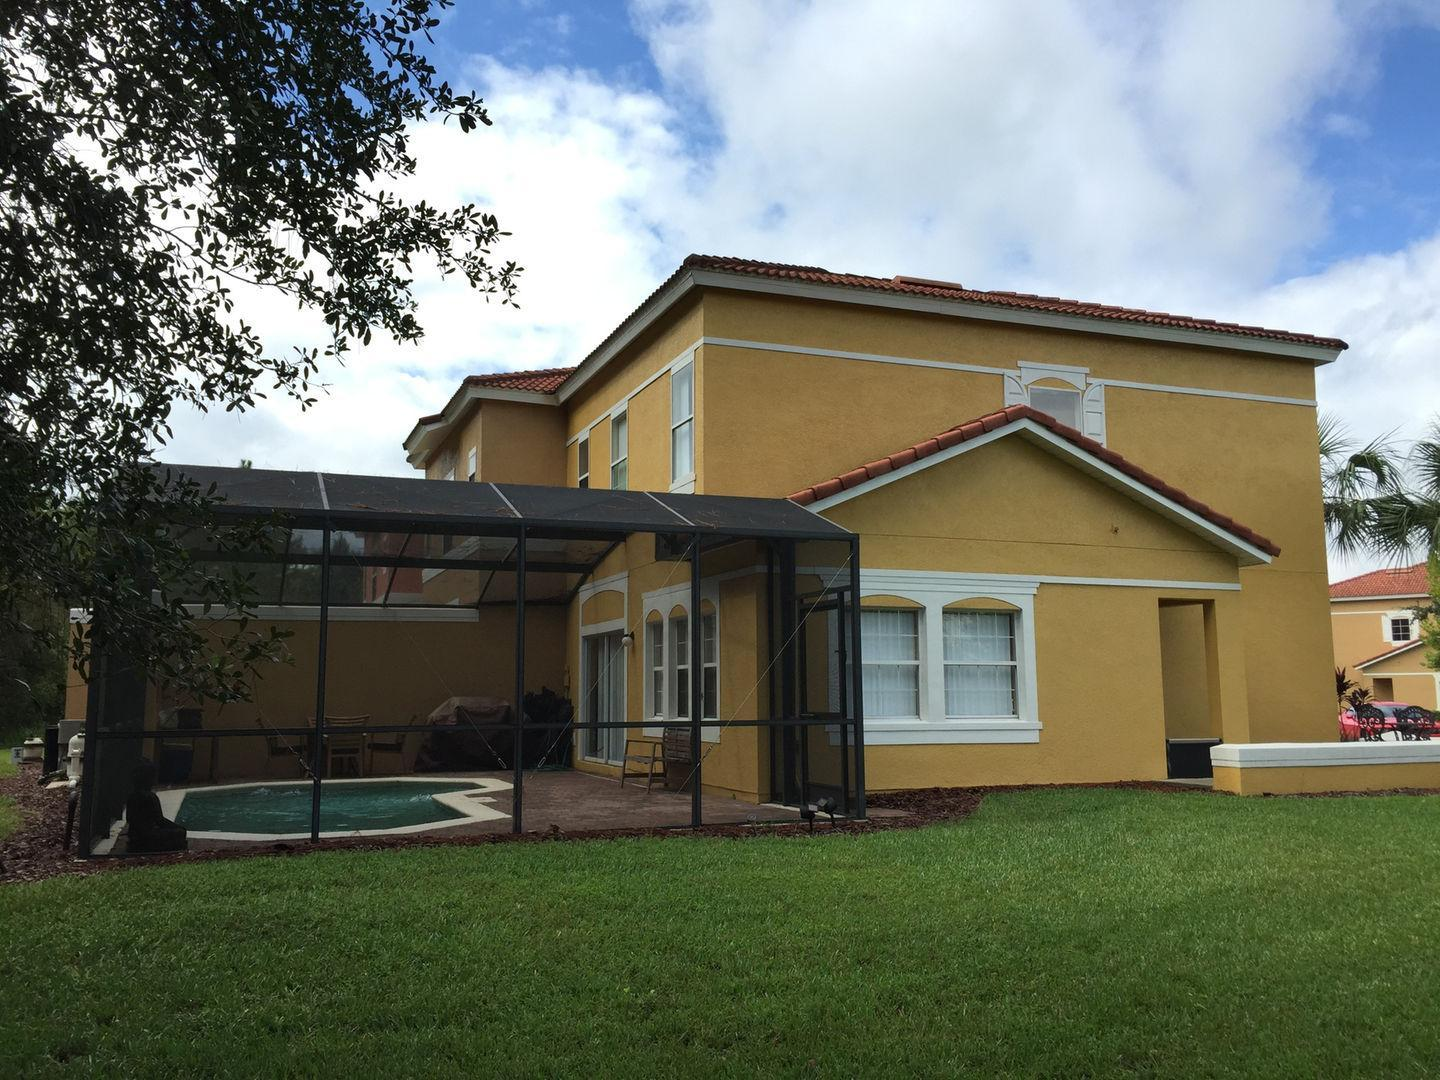 4BR Home with Pool in Gated Community Pet Policy